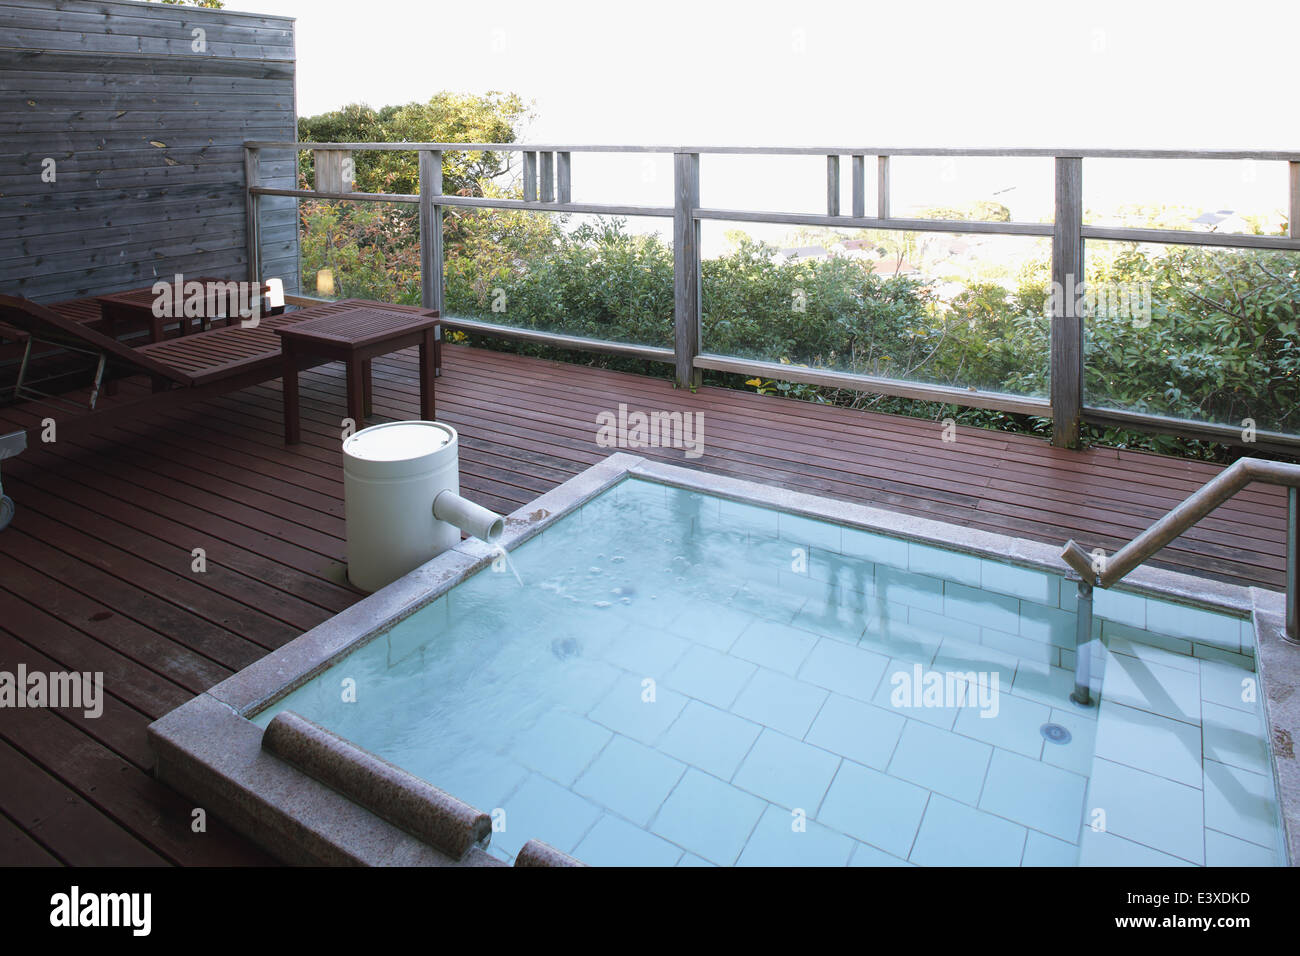 Japanese Outdoor Bath Stock Photos & Japanese Outdoor Bath Stock ...